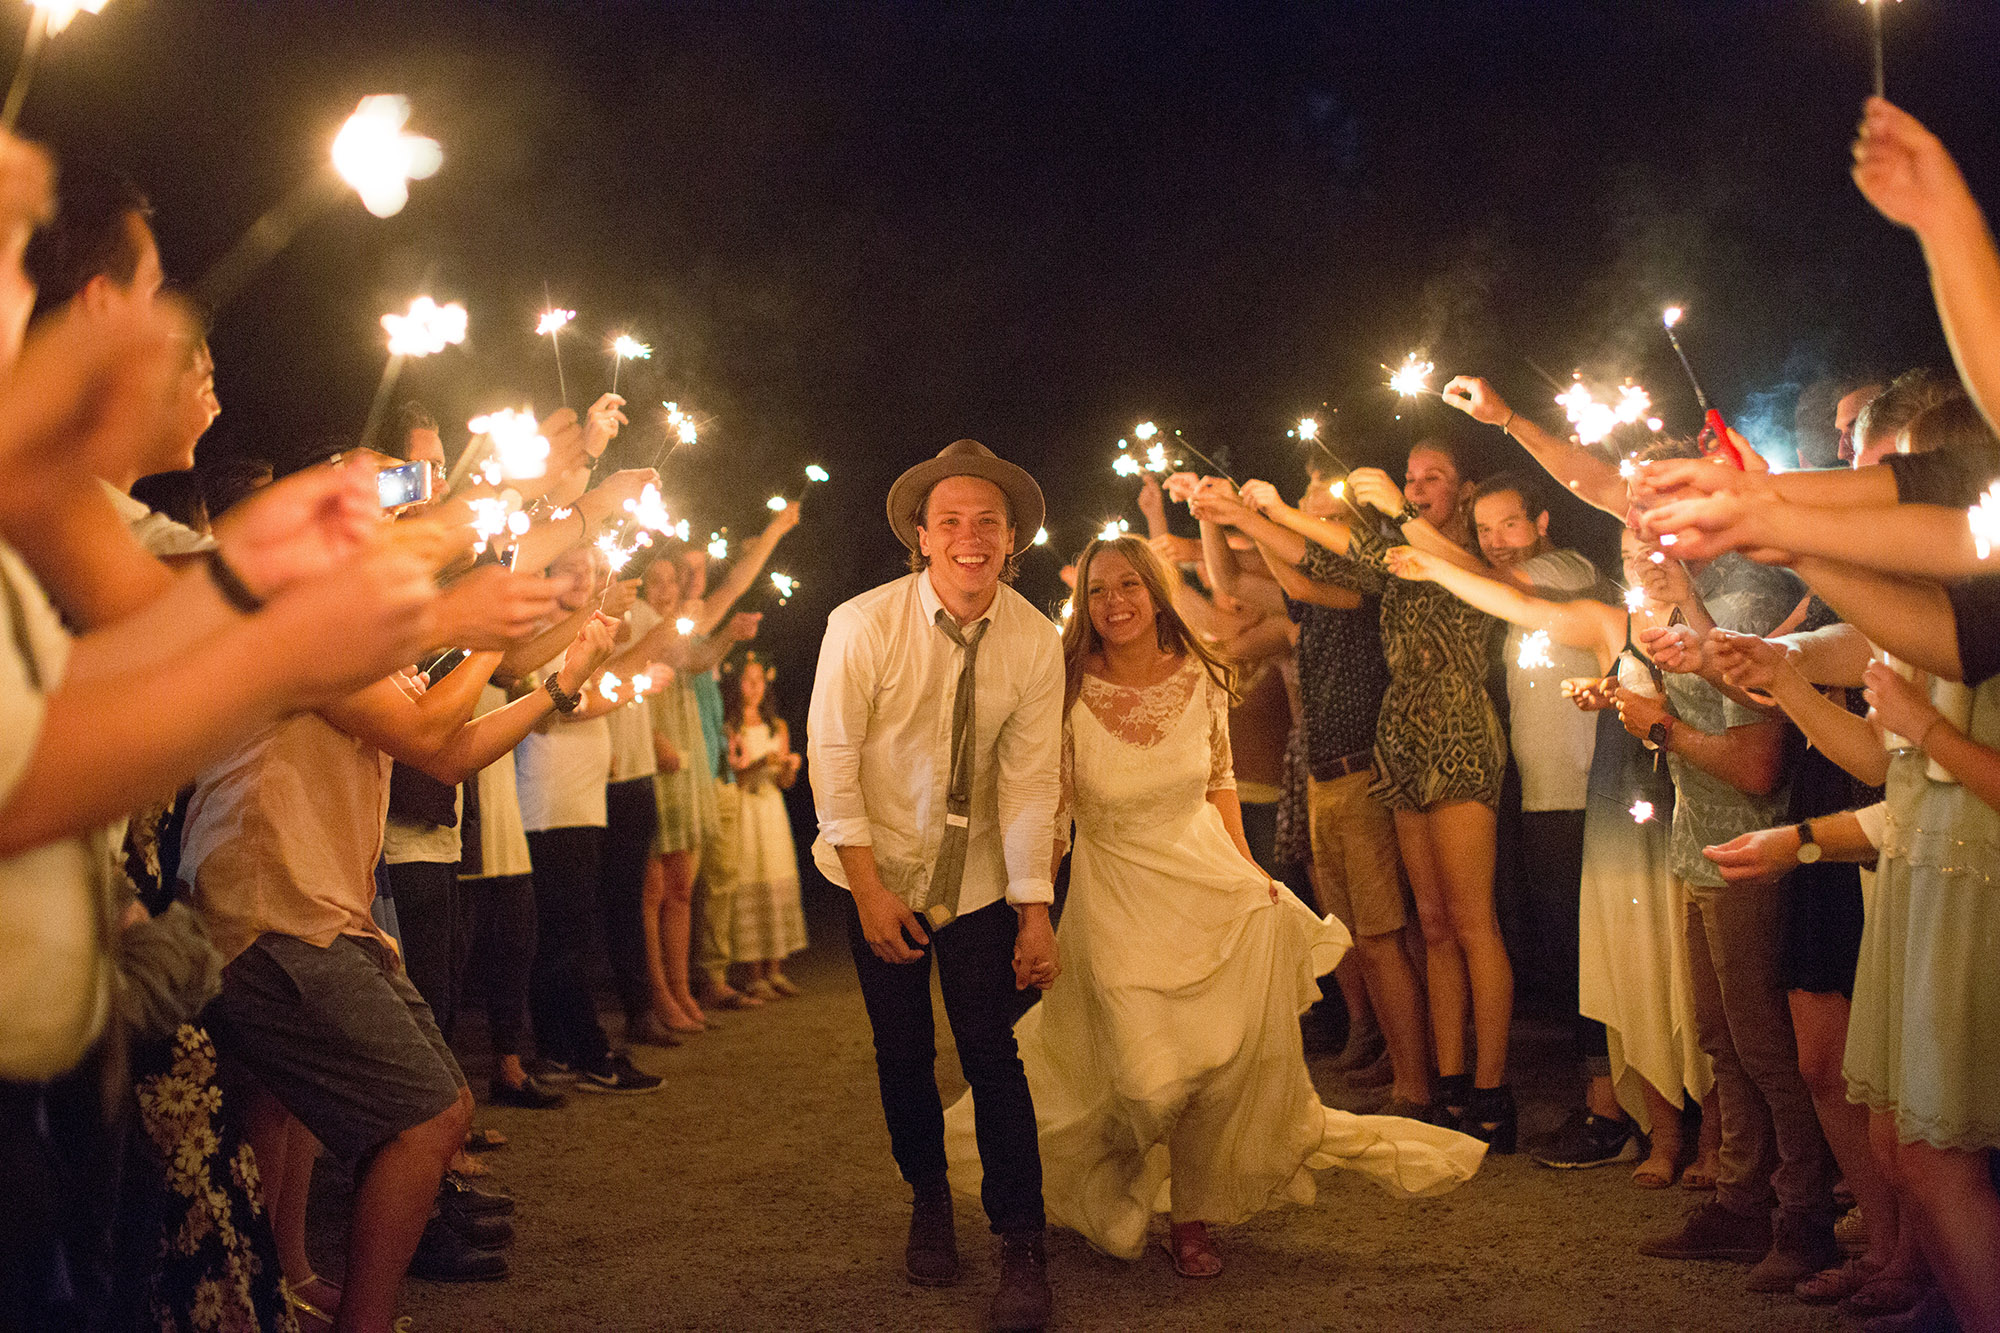 A wedding couple is holding hands and their guests are standing around them holding sparklers.